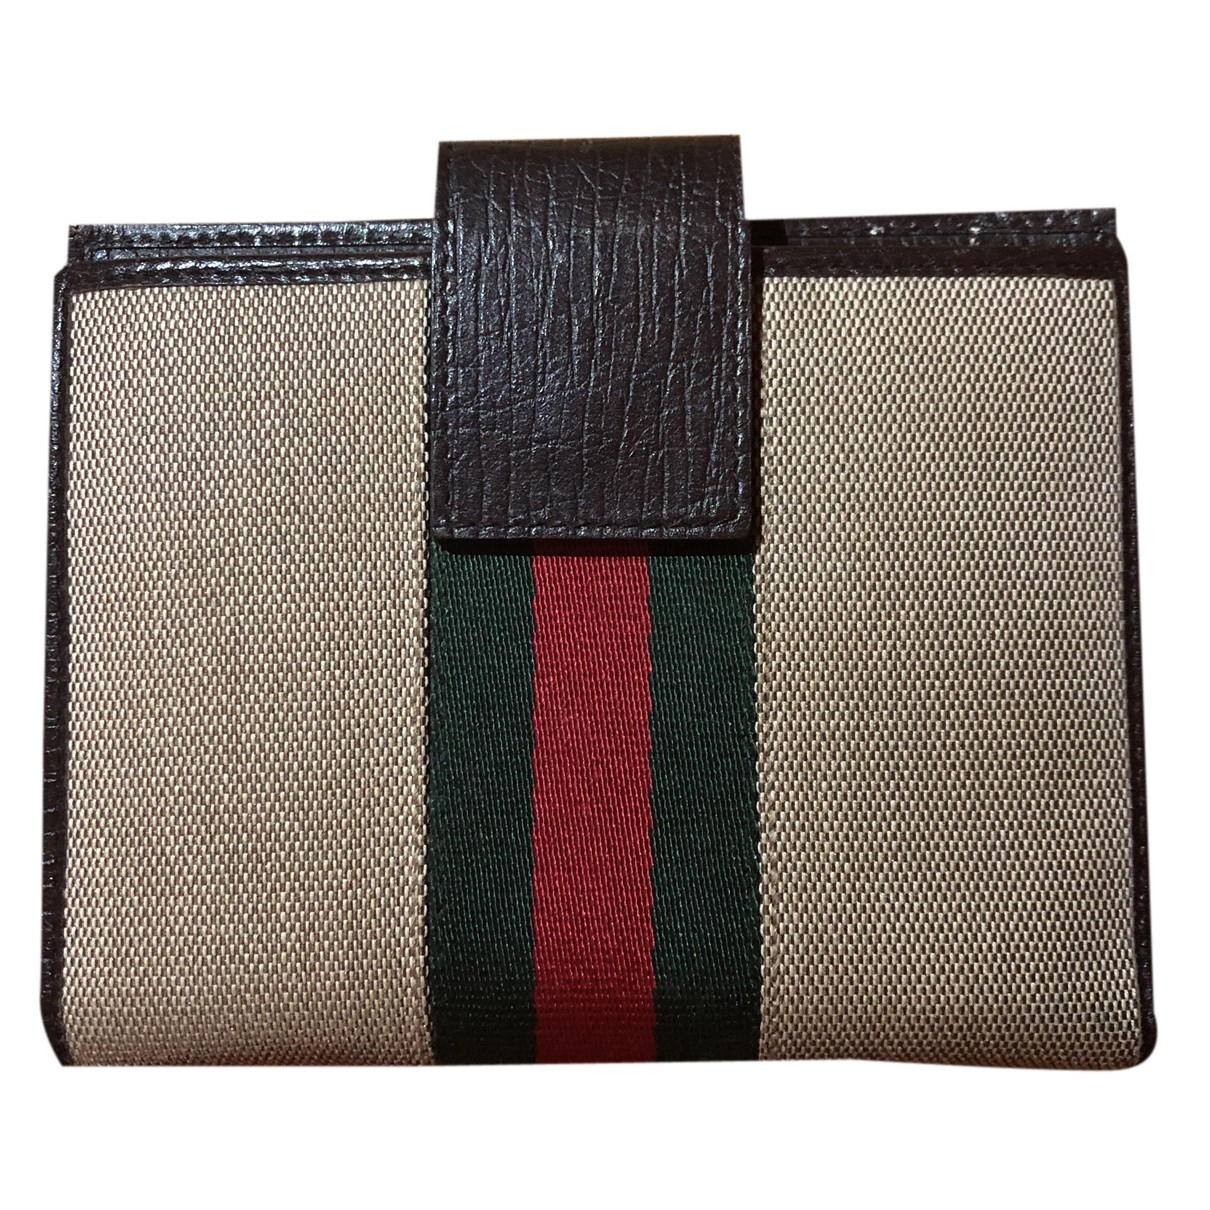 Gucci N Brown Leather Purses, wallet & cases for Women N